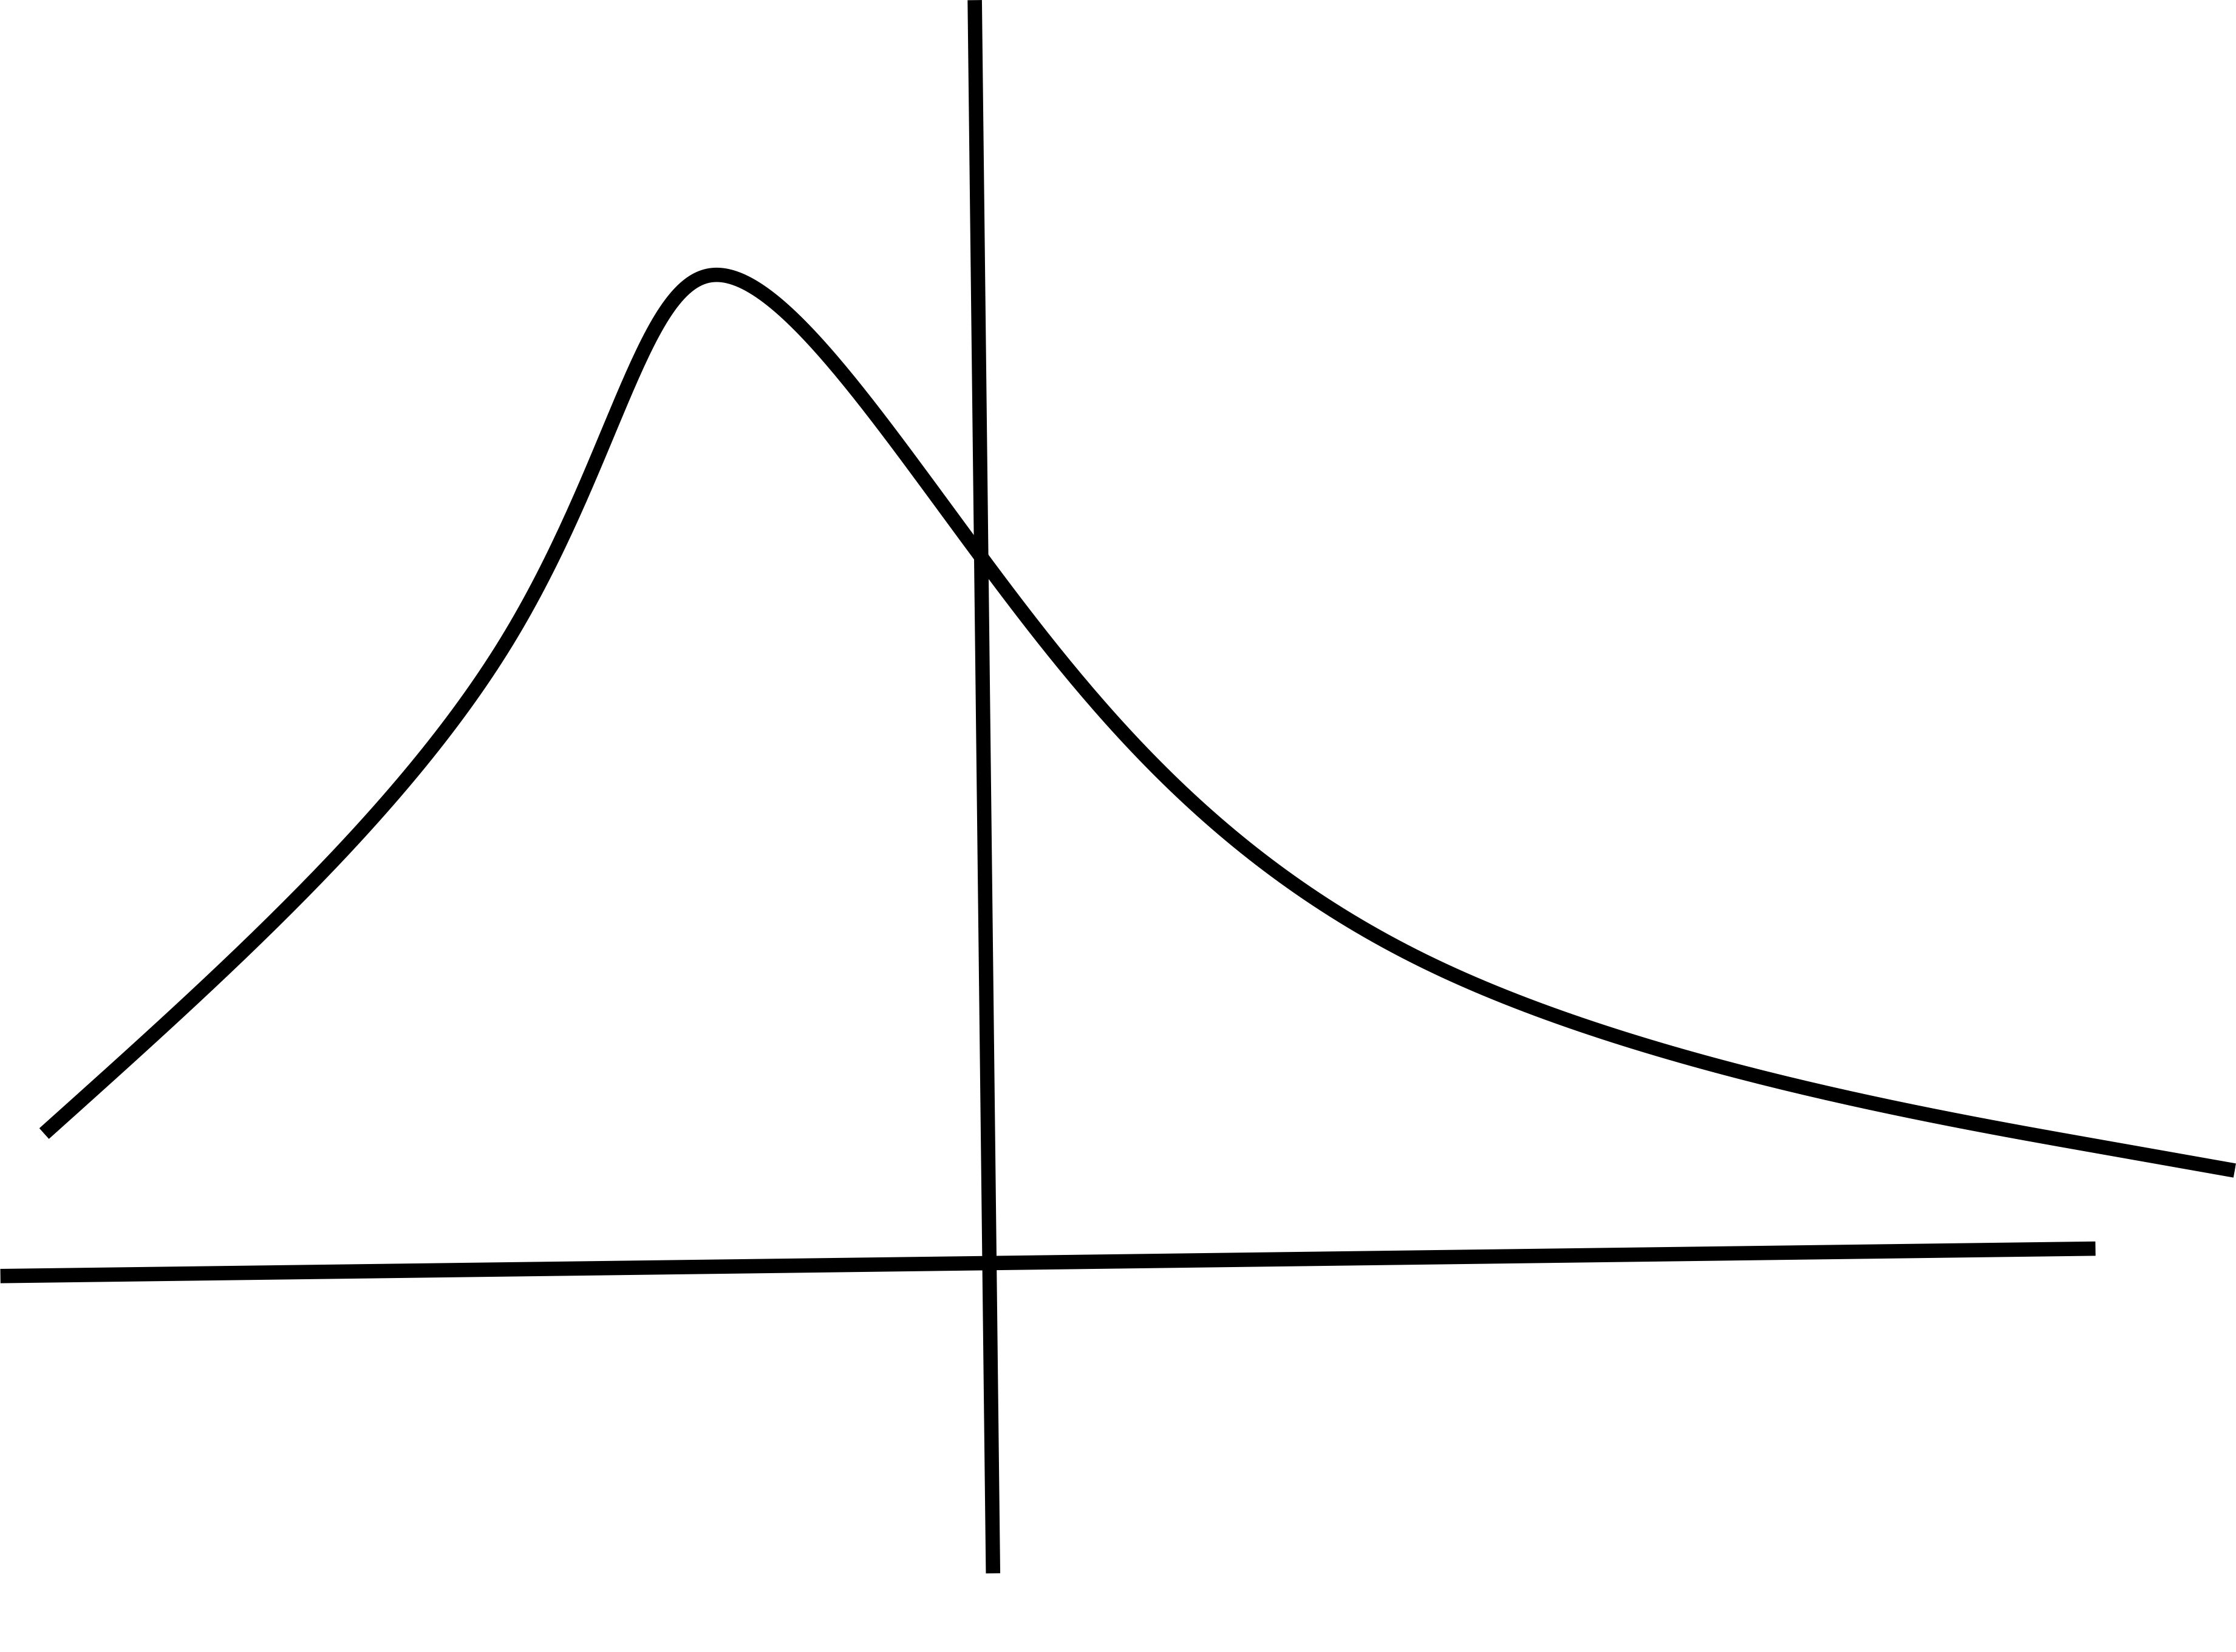 I need help with Which graph represents symmetric